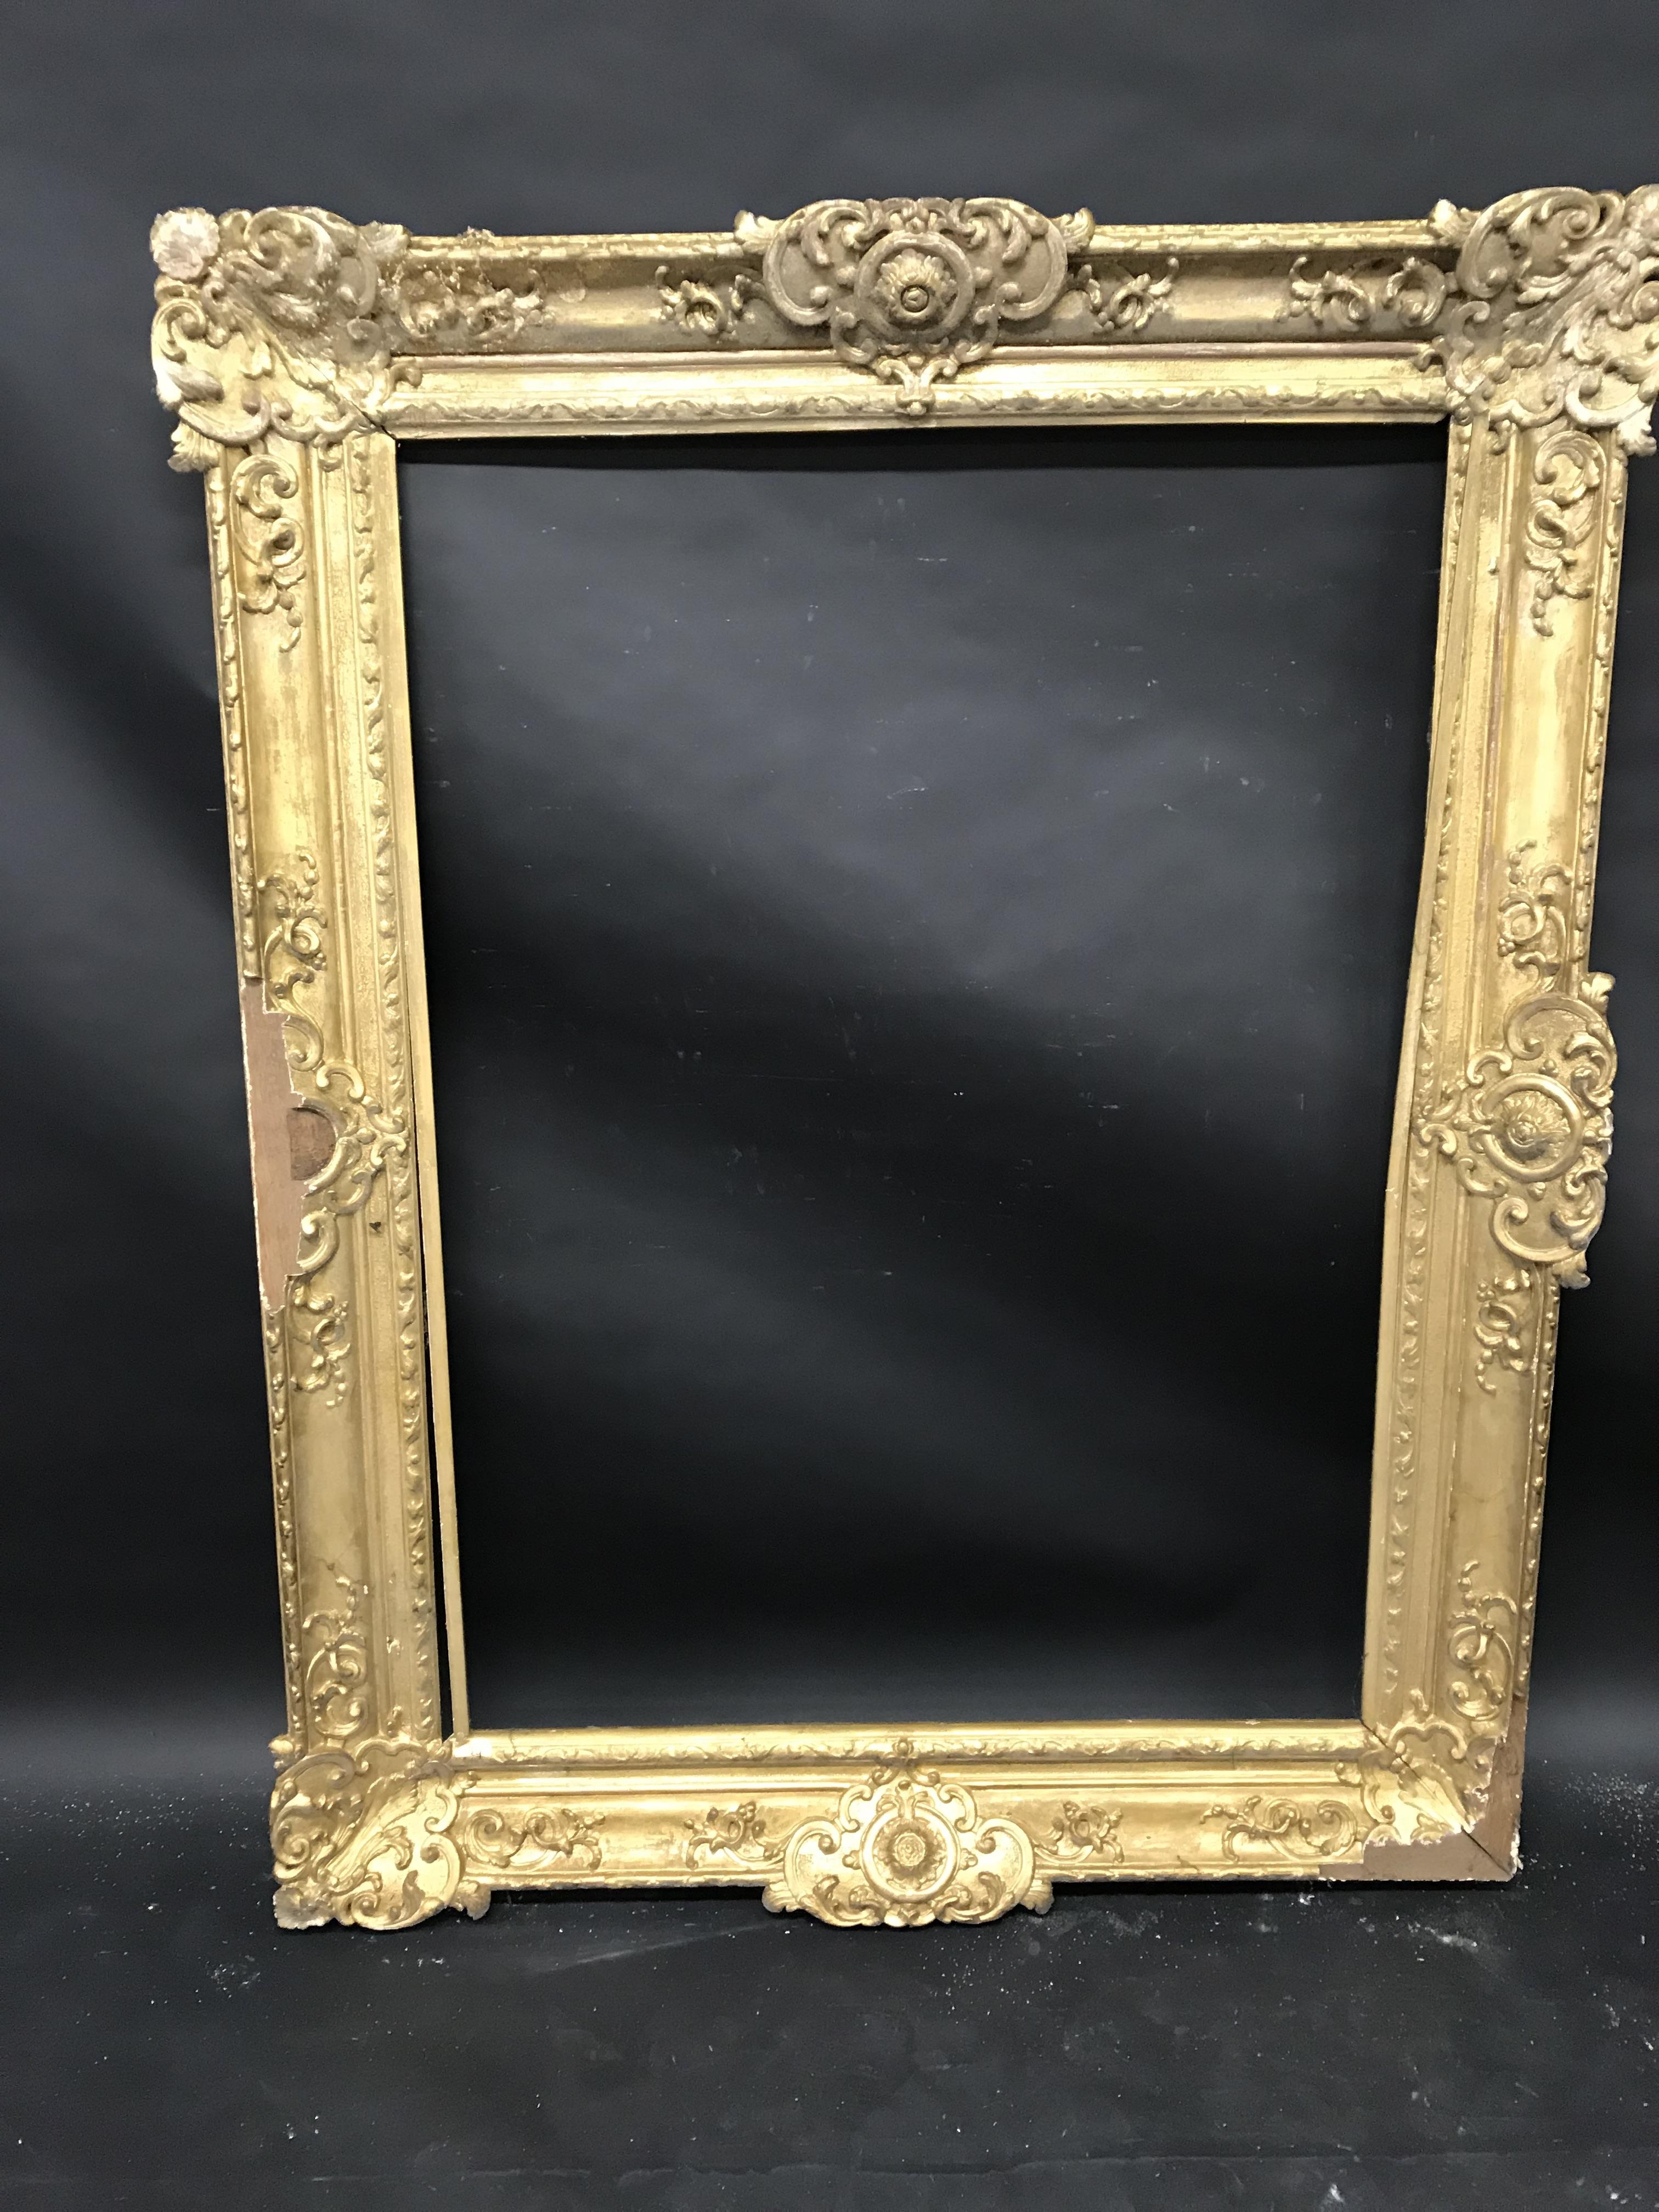 Lot 48 - Early 18th Century French School. A Louis XIV Carved Giltwood Oak Frame with swept centres and